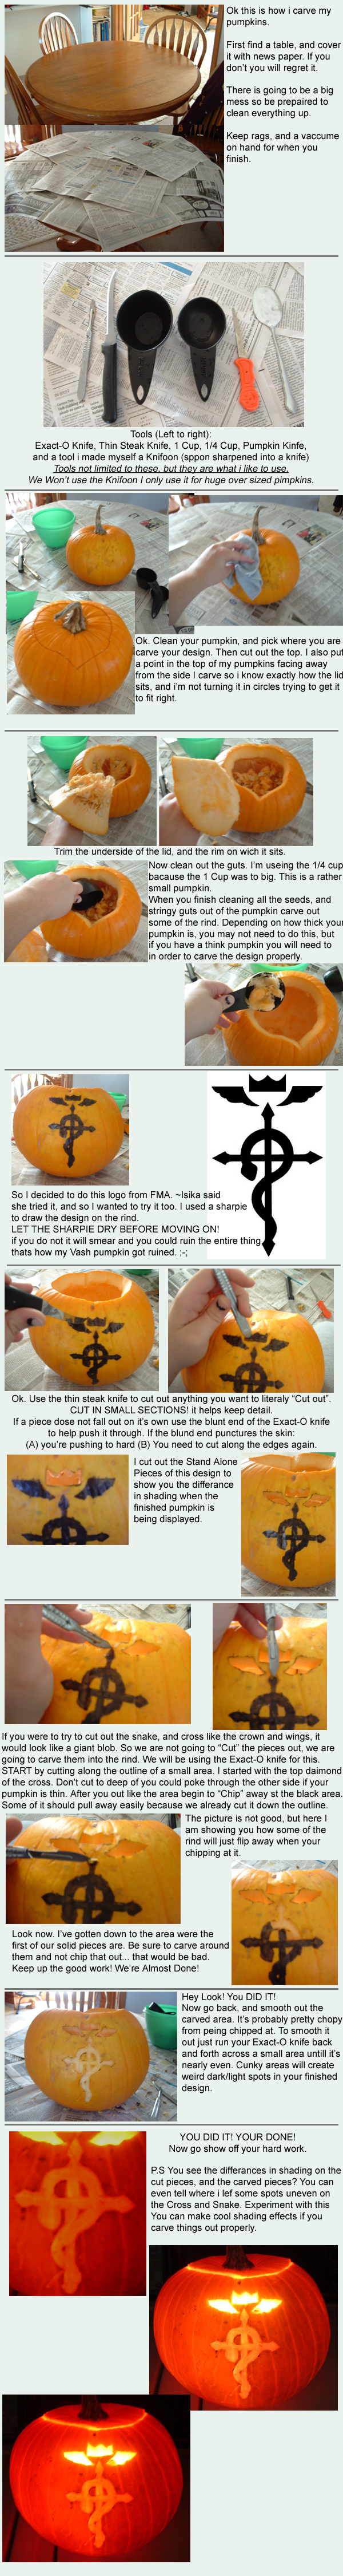 Pumpkin carving tutorial by finnajei on deviantart for Pumpkin sculpting tutorial